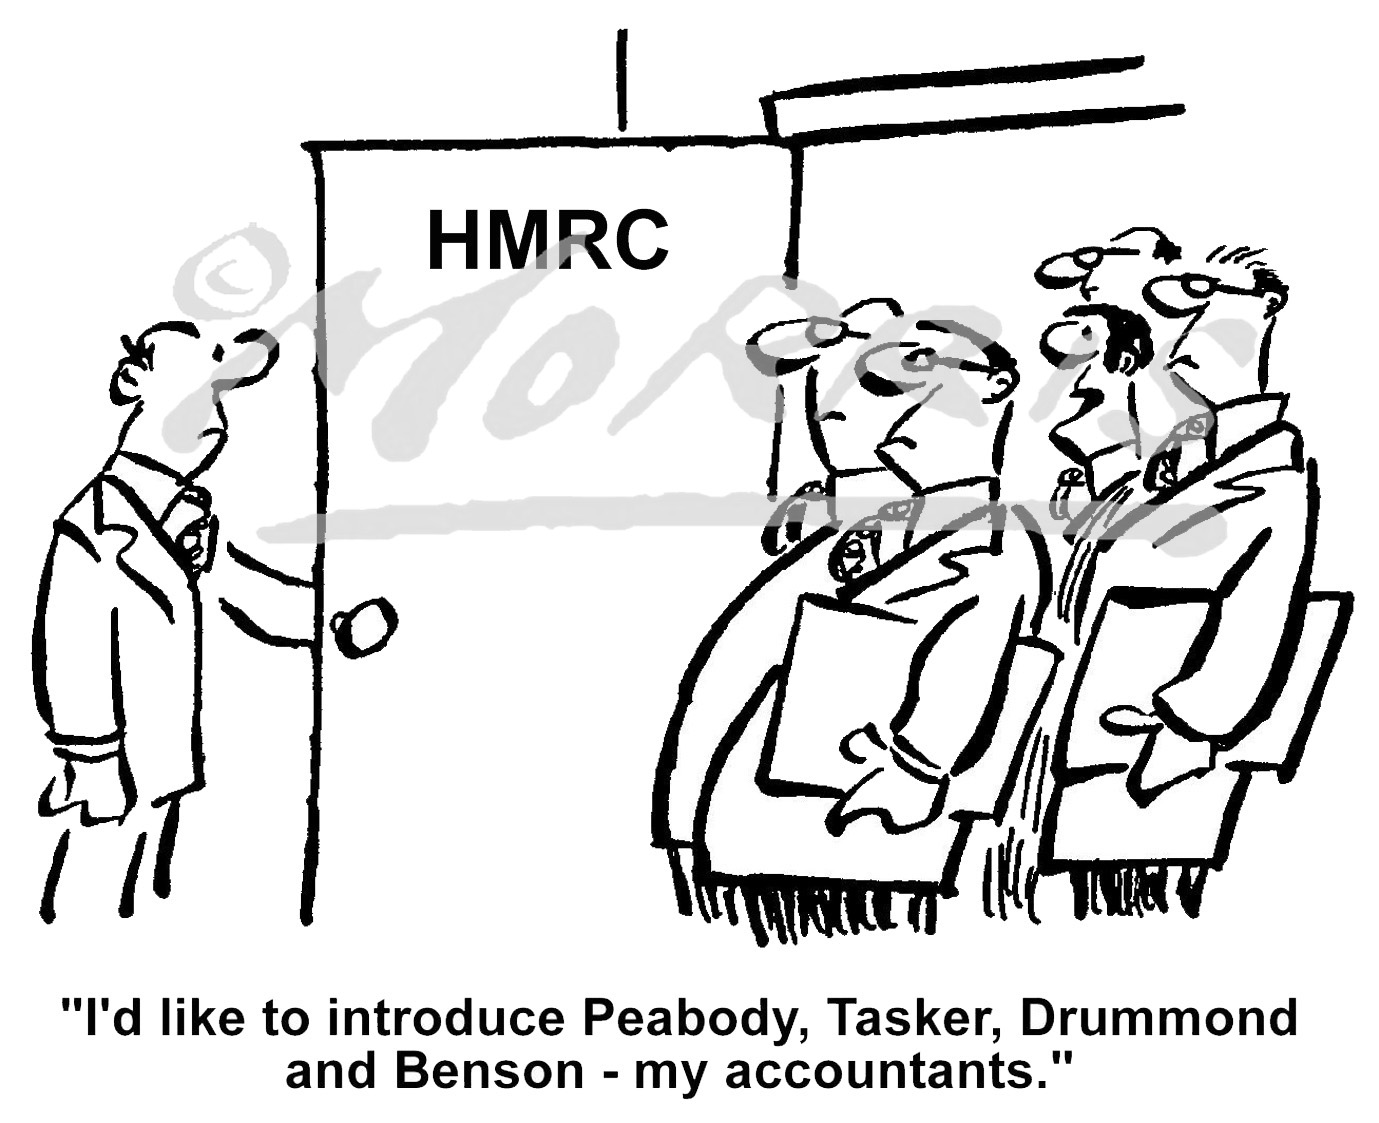 HMRC accountants business cartoon Ref: 0600bw